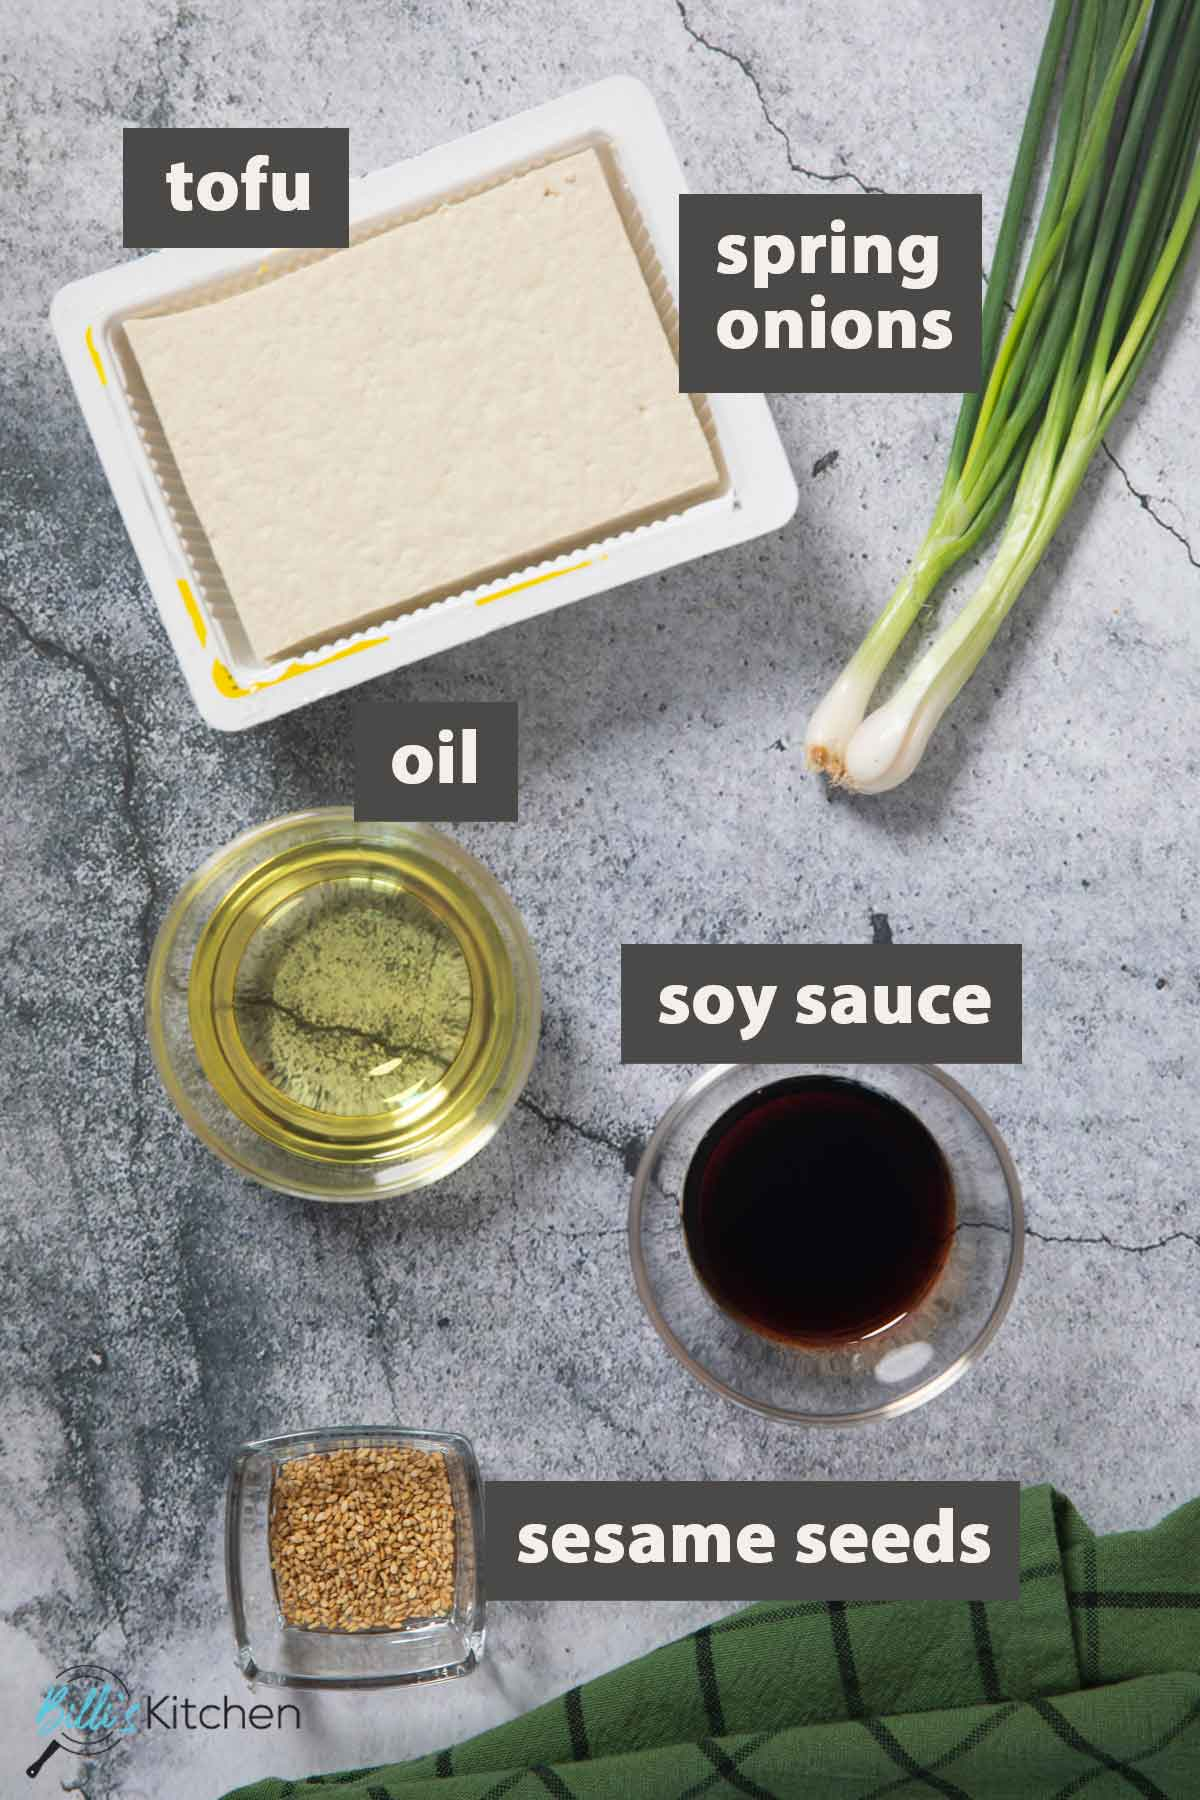 An image showing all the ingredients you need to prepare crispy tofu with soy dipping sauce.